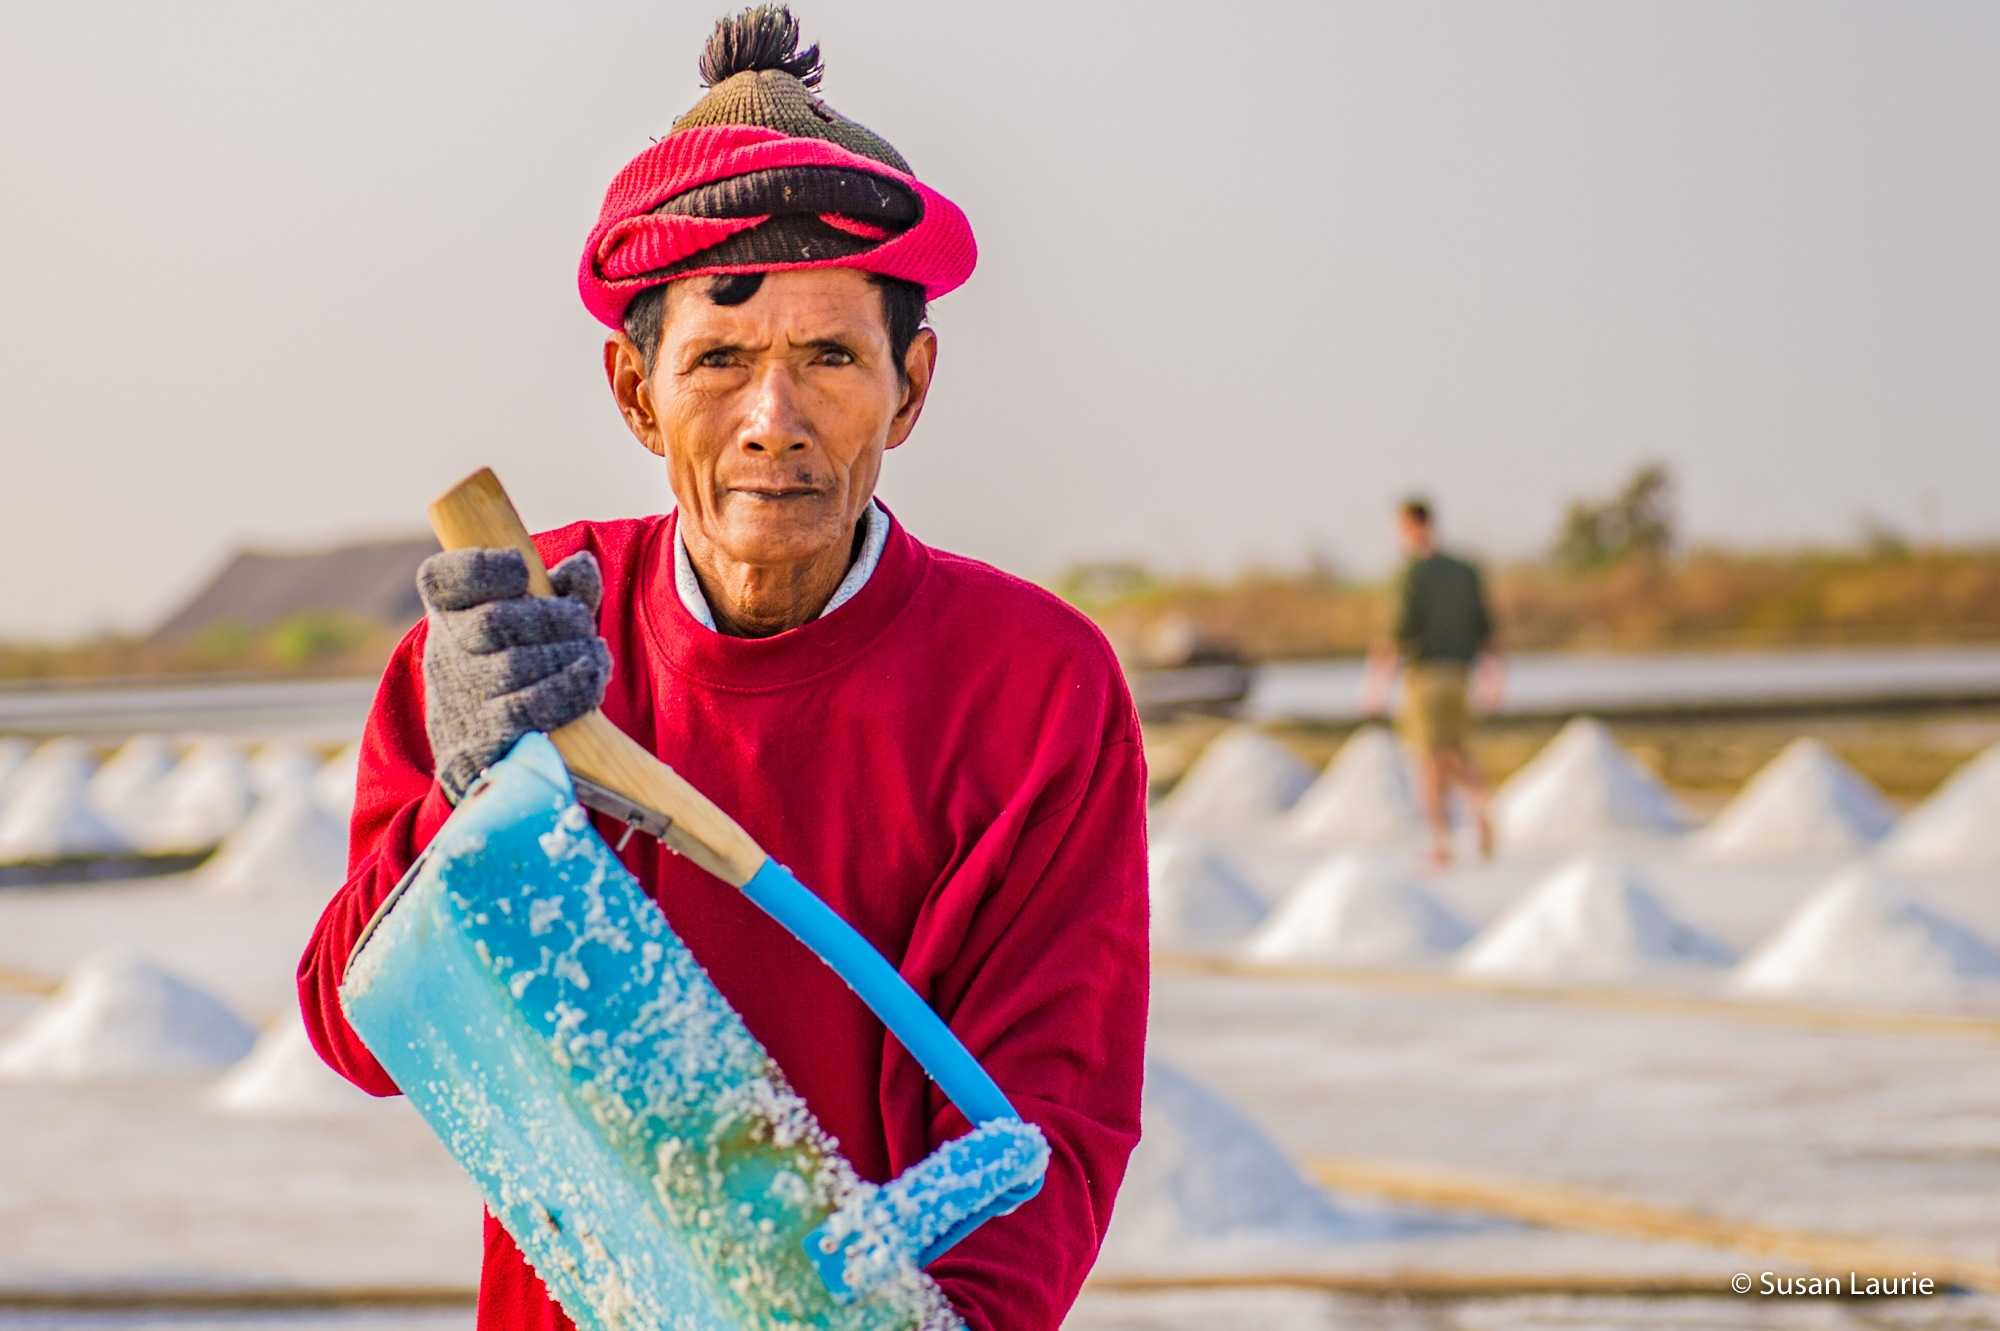 Thailand Salt Fields by Susan Laurie